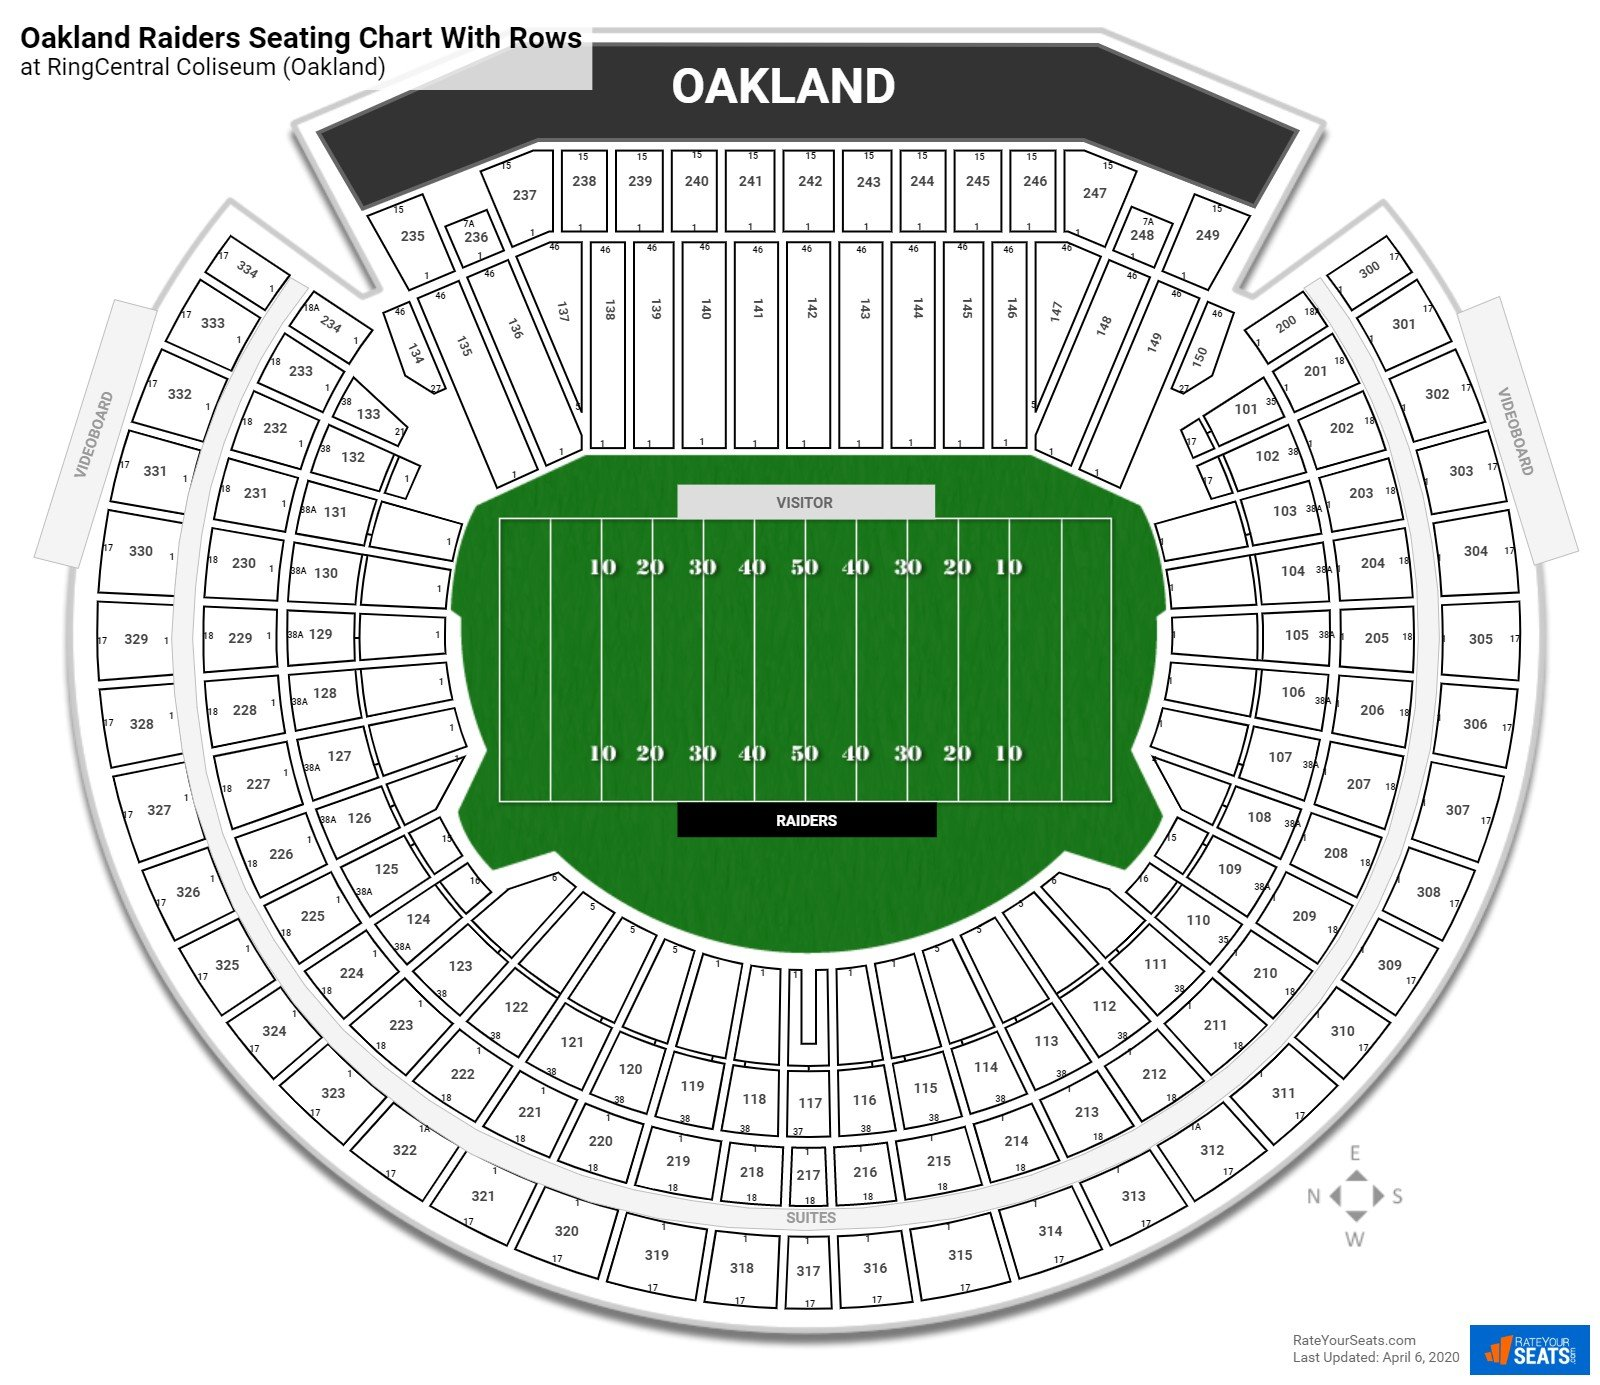 Ringcentral Coliseum Seating Charts For Football Rateyourseats Com